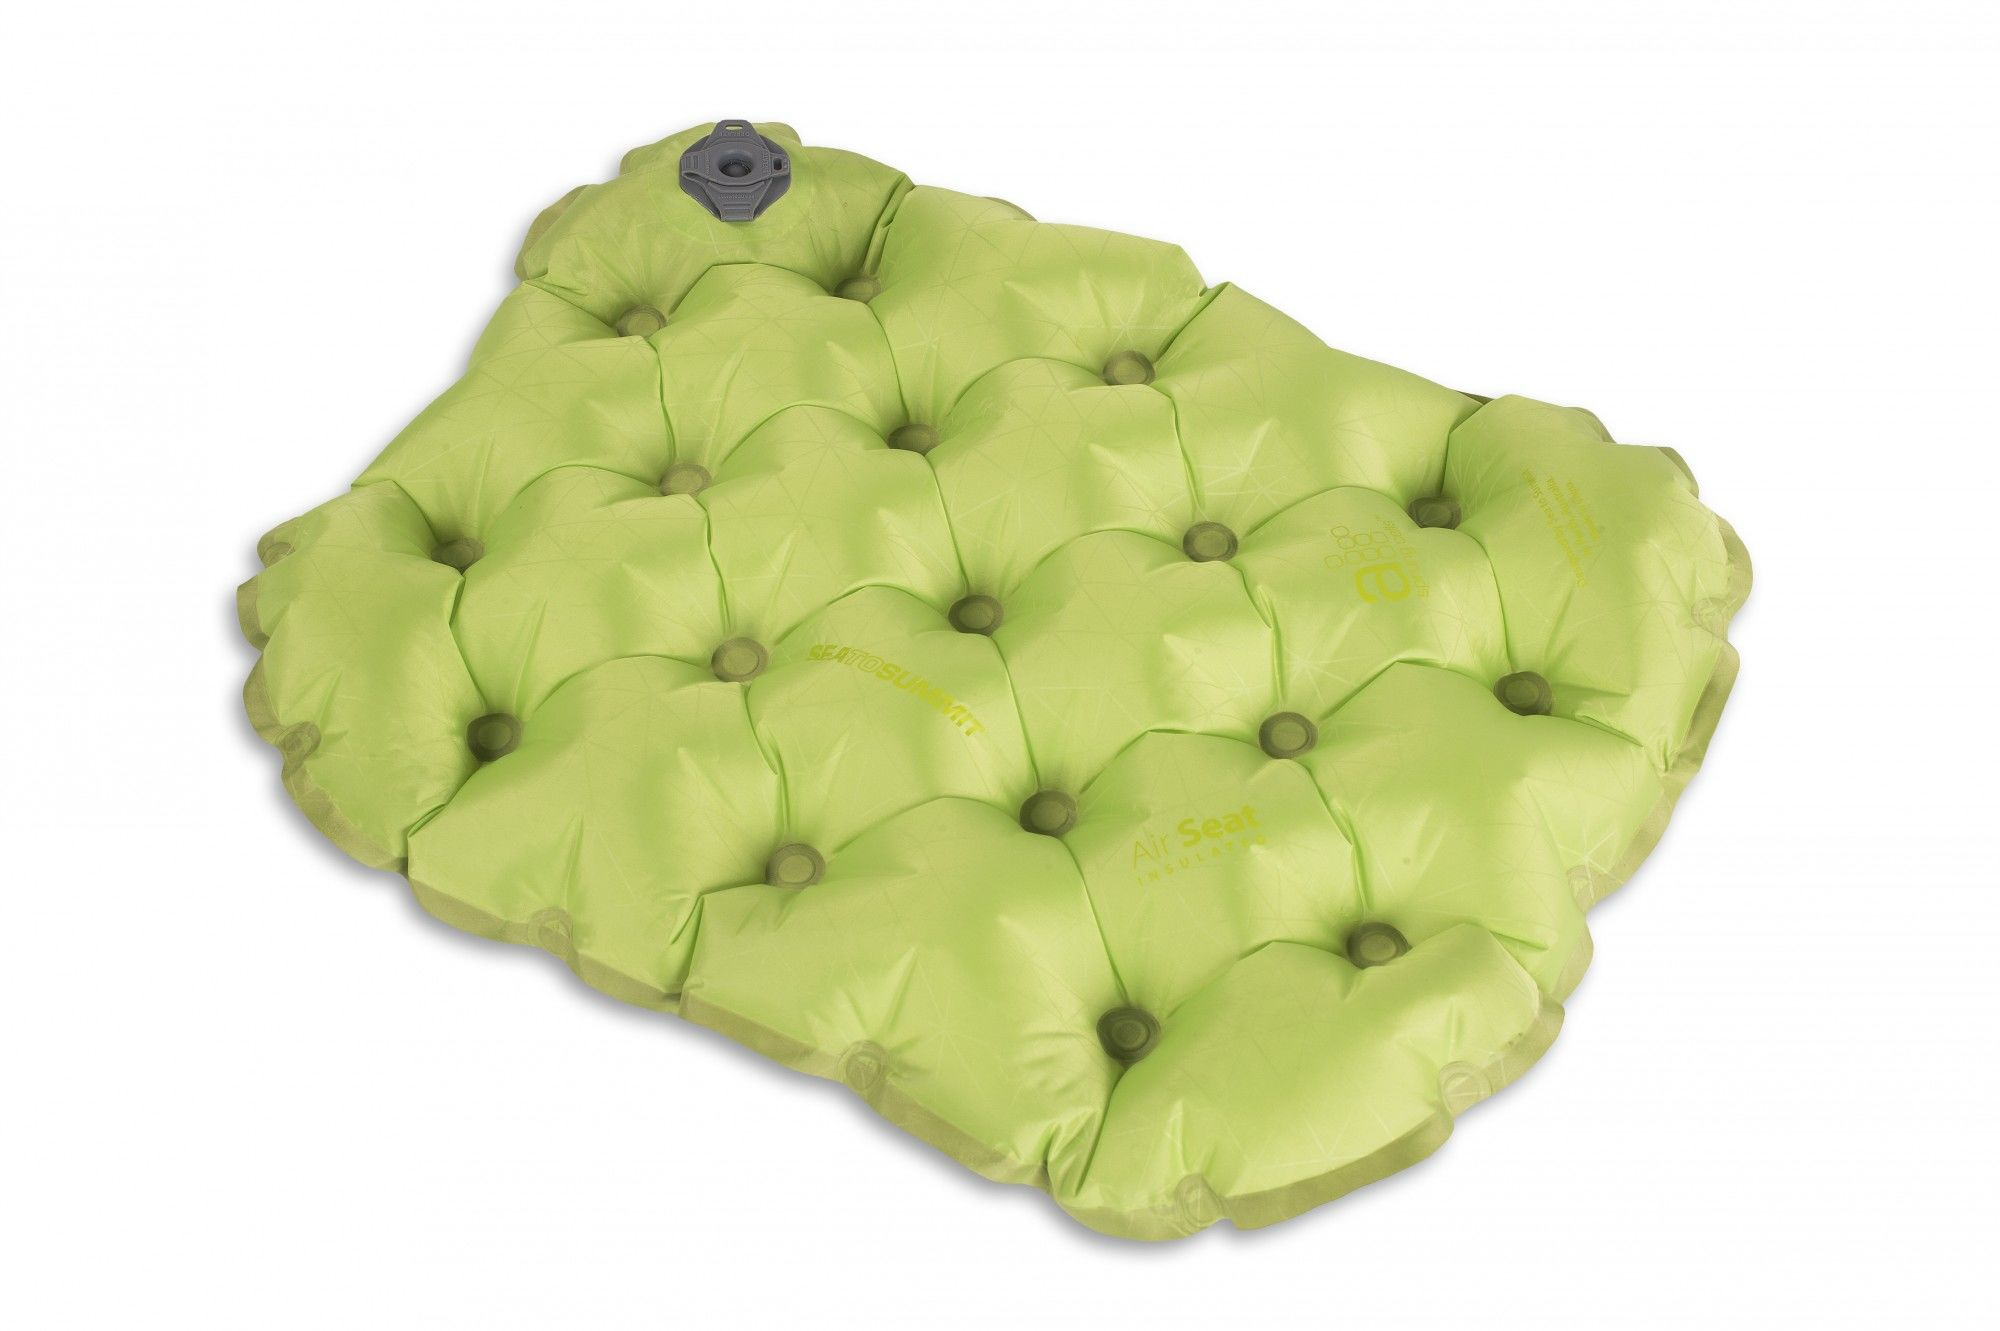 Sea to Summit Air Seat Insulated Grün, One Size -Farbe Green, One Size